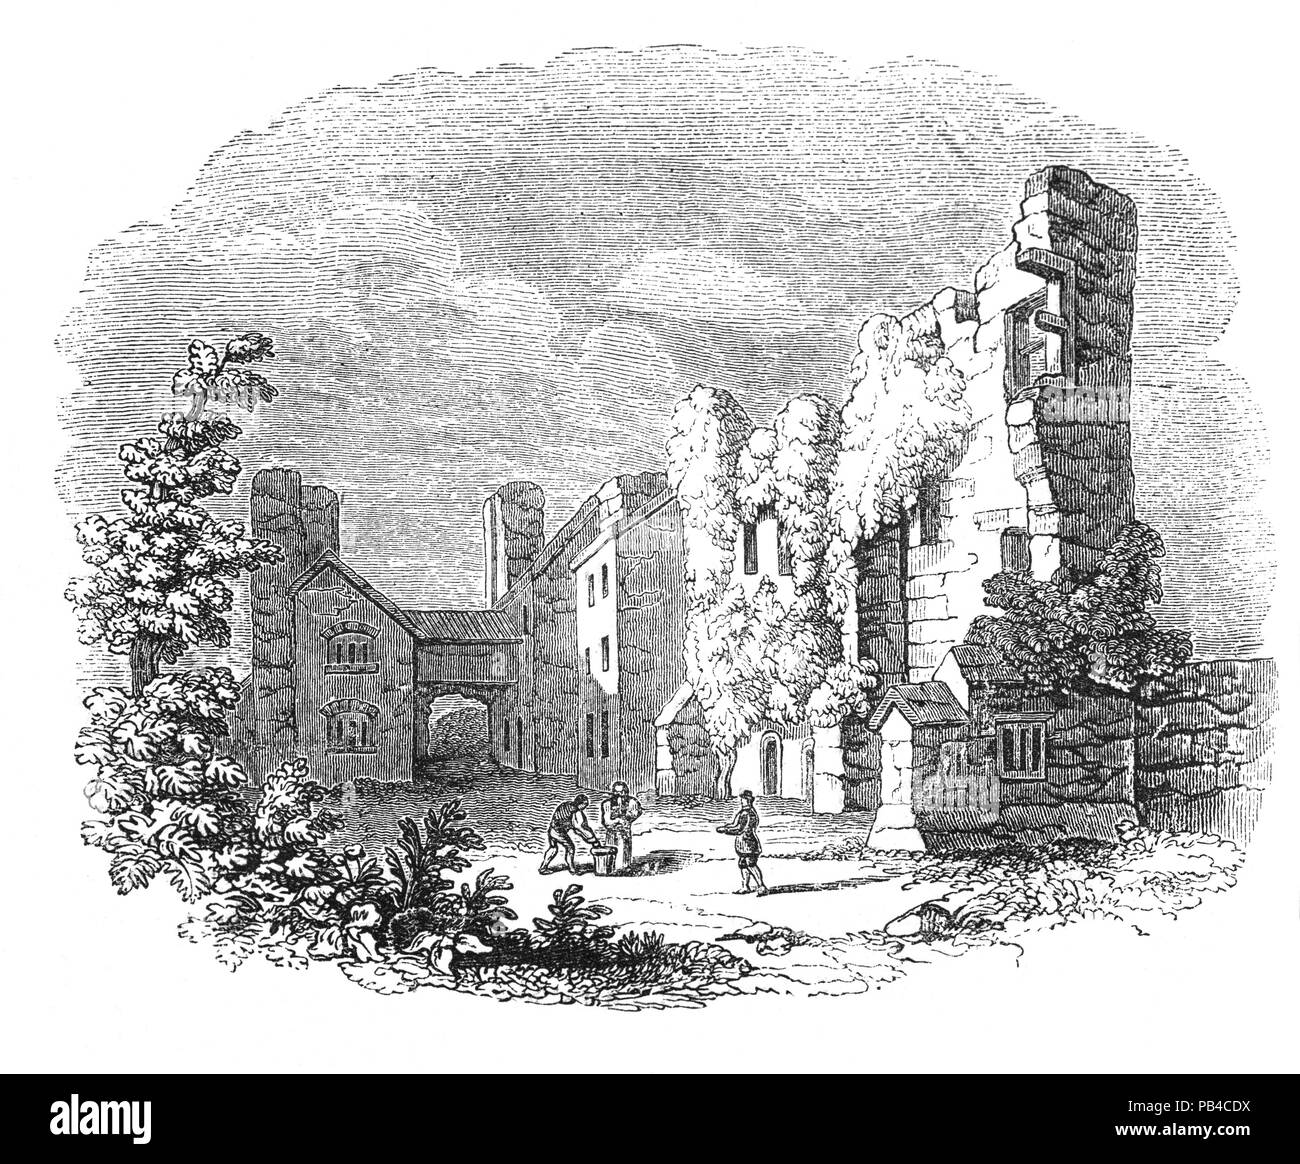 The ruins of 12th Century Leicester Abbey where Cardinal Wolsey died on 29 November 1530. In spite of having many enemies, Cardinal Wolsey retained Henry VIII's confidence until Henry decided to seek an annulment of his marriage to Catherine of Aragon, so that he could marry Anne Boleyn. Wolsey's failure to secure the annulment directly caused his downfall and arrest. In 1529 he was accused of treason and ordered to London but fell ill on the journey, and died at Leicester. - Stock Image